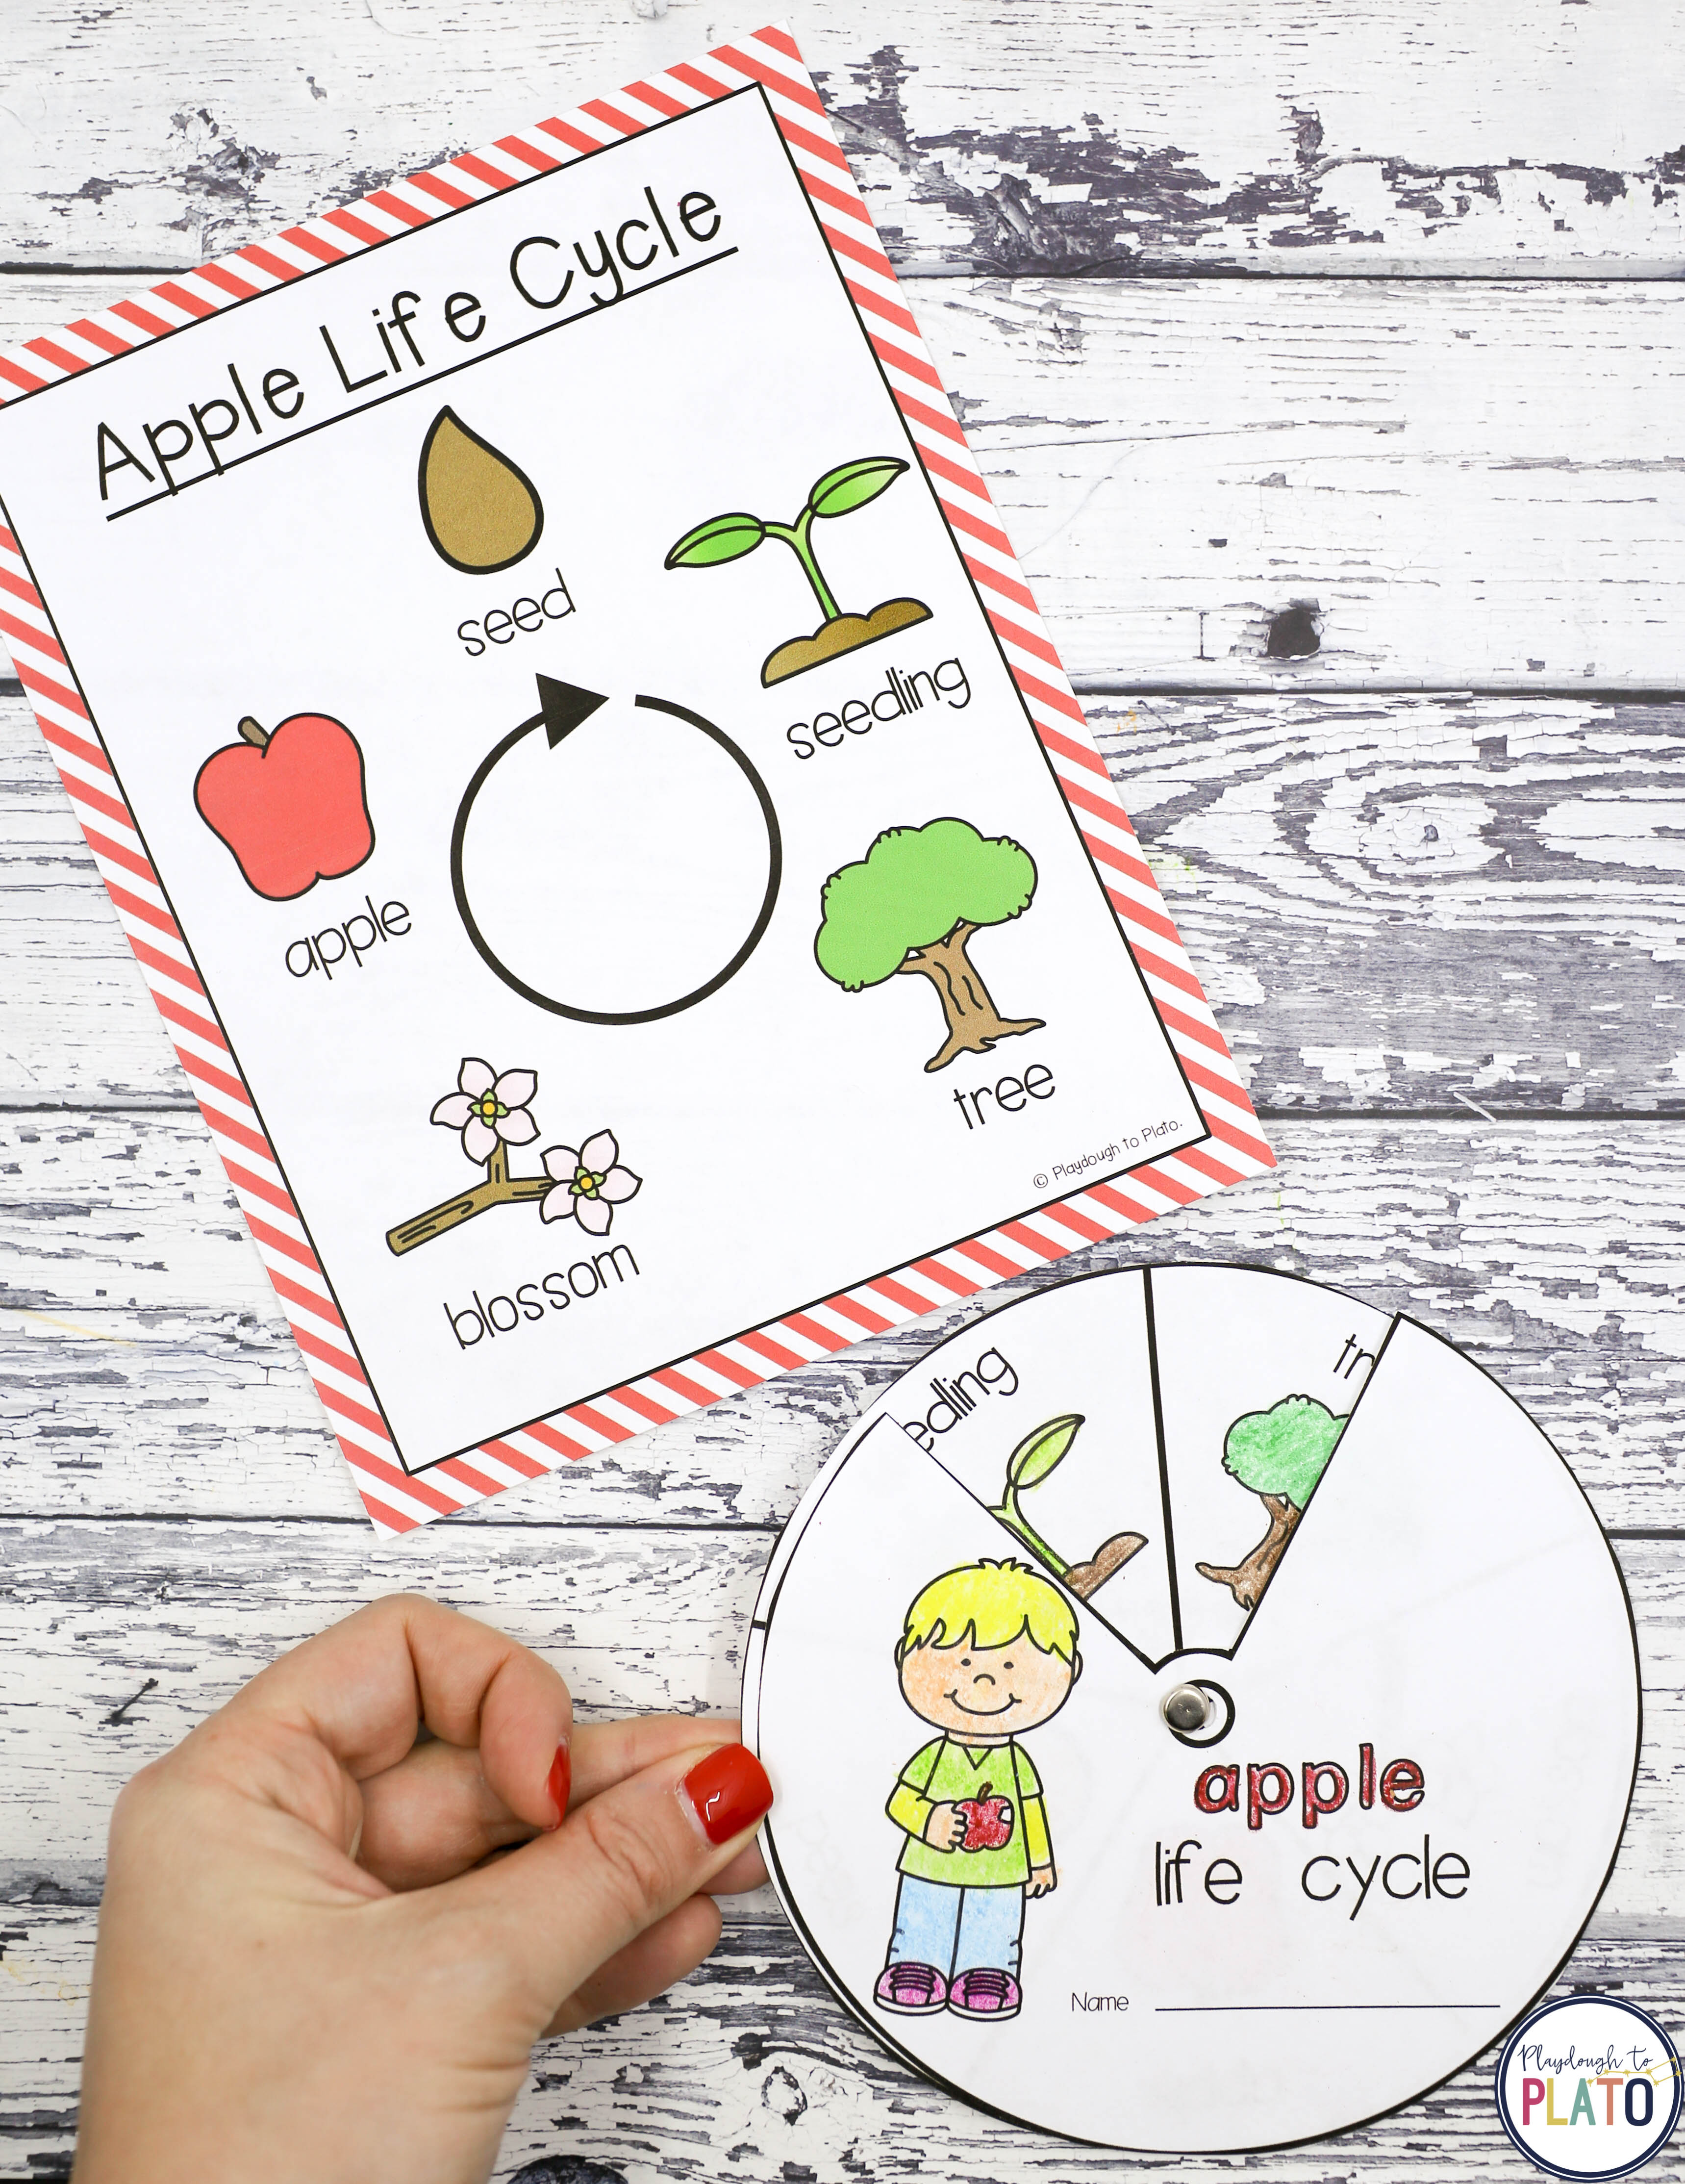 photograph relating to Apple Life Cycle Printable called Apple STEM Issues